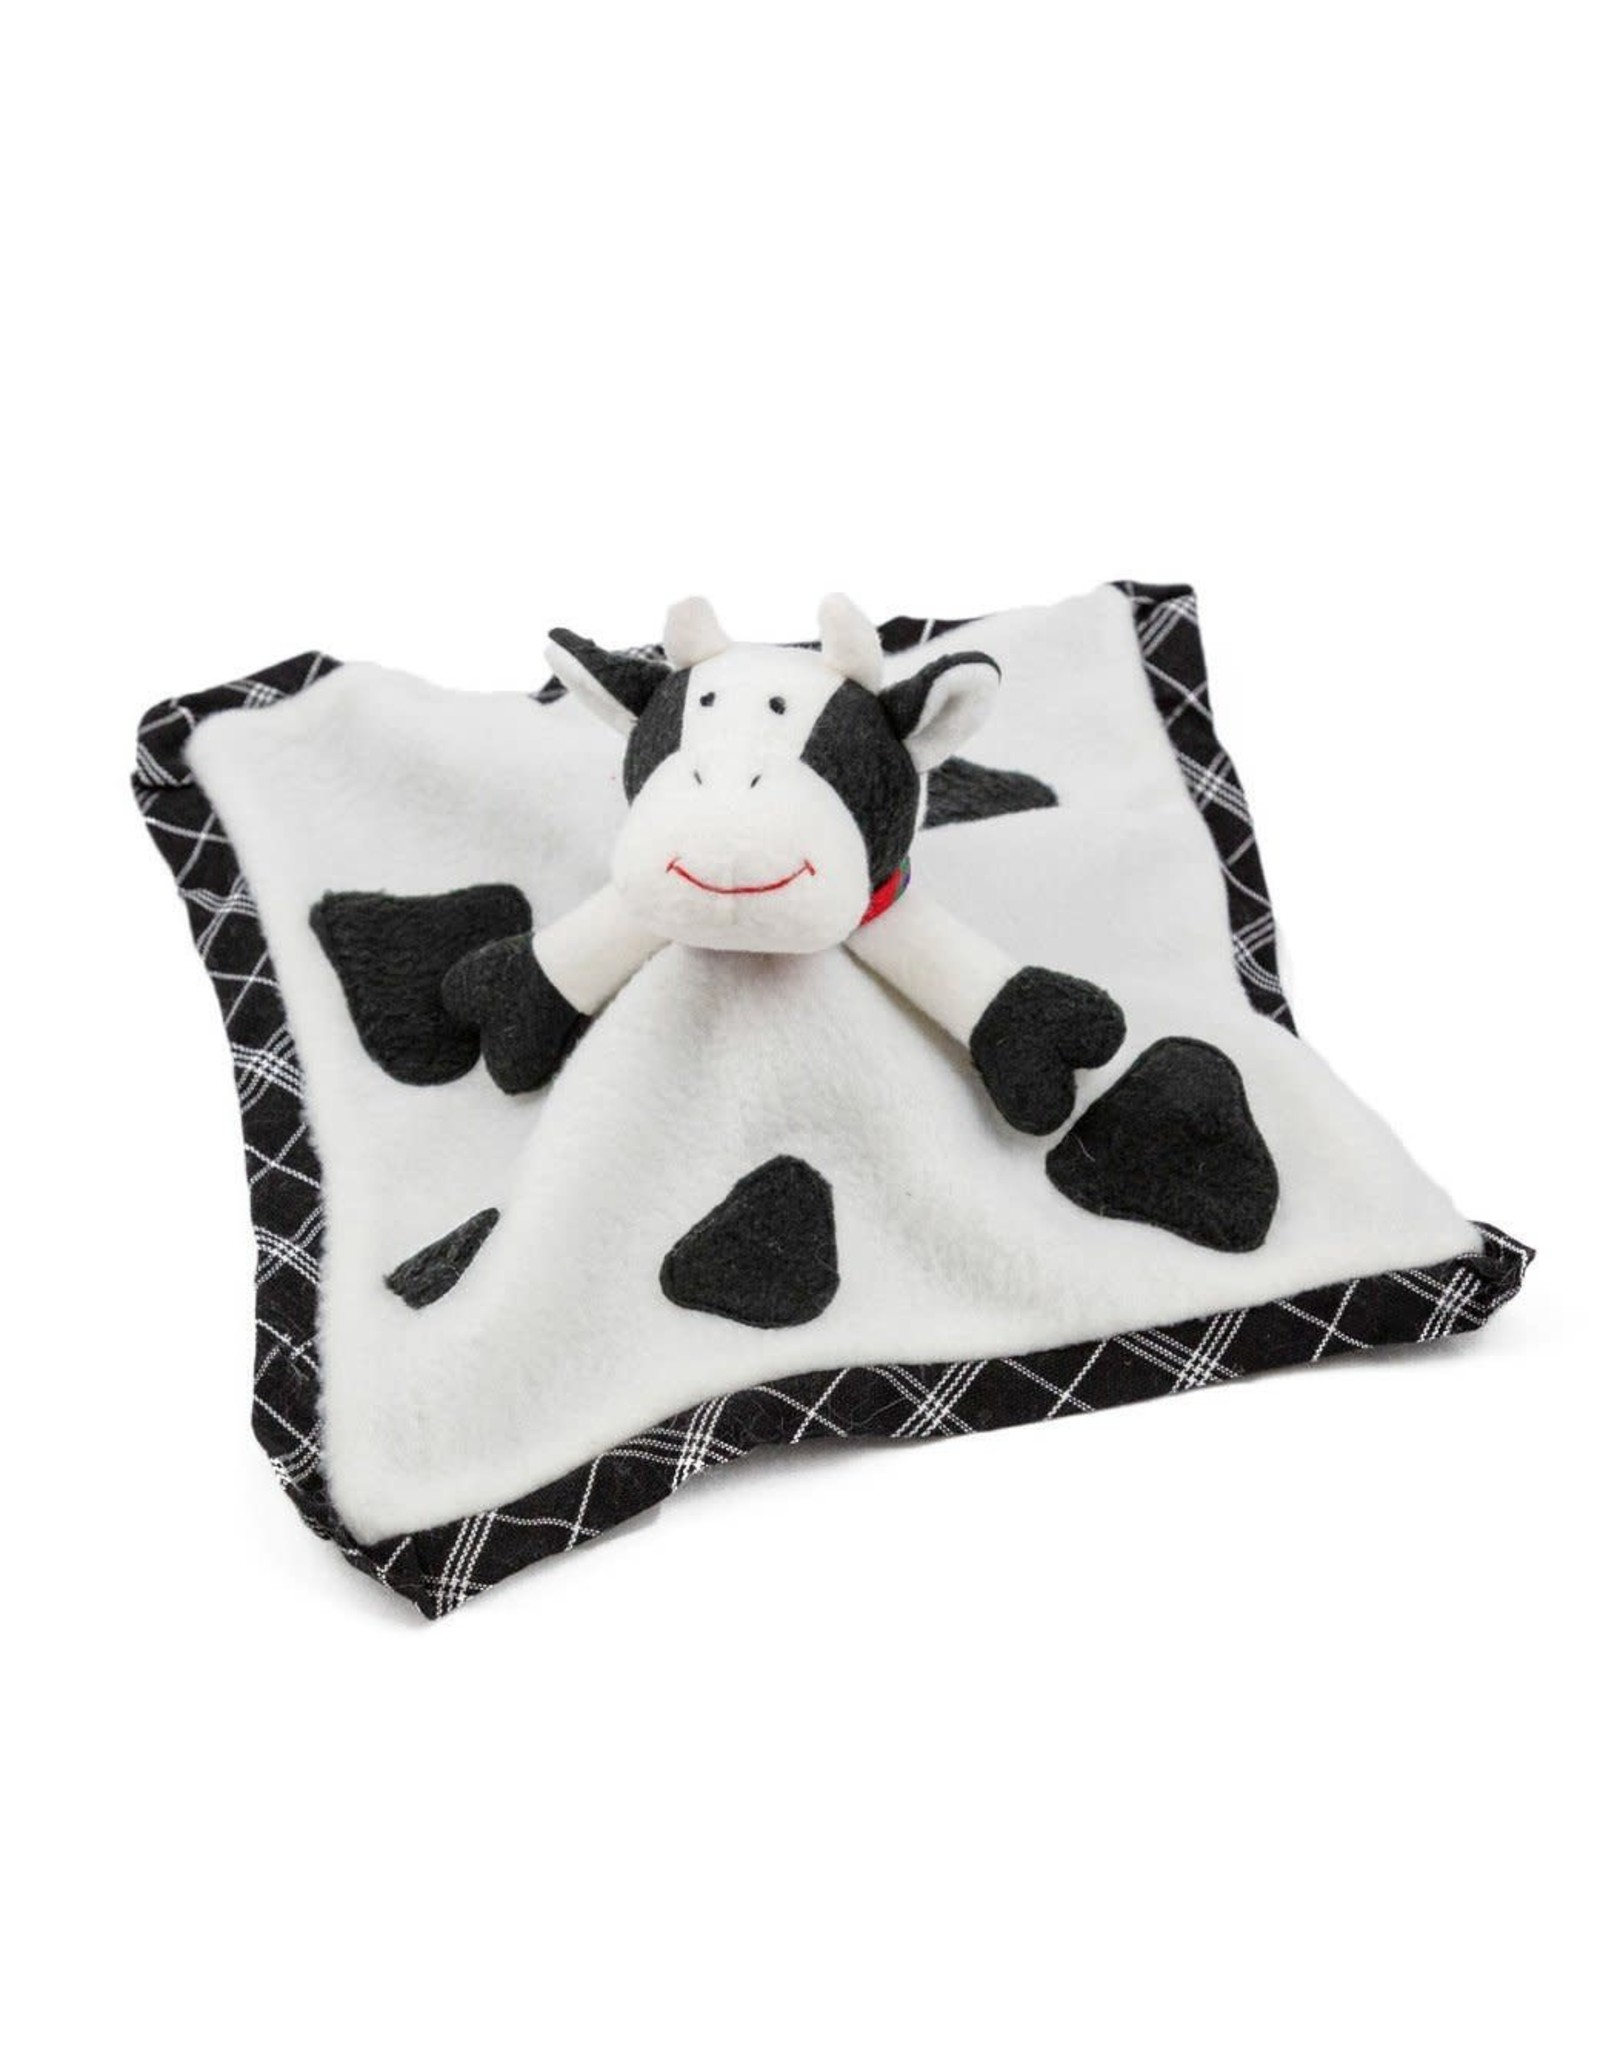 Baby Cow Snuggle Blanket